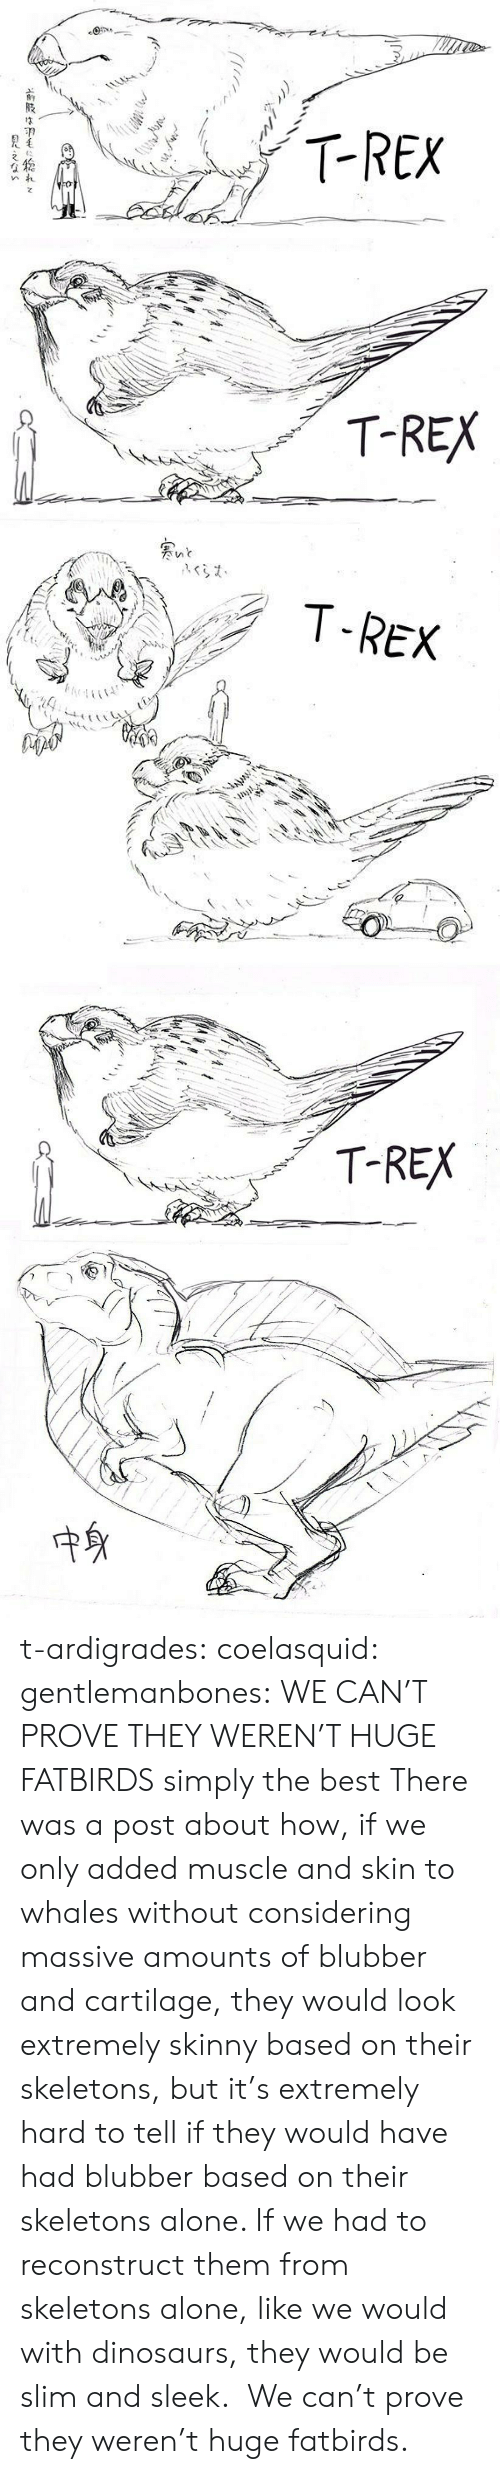 We Only: T-REX  FO   T-REX   T-REX  A   T-REX  中身 t-ardigrades:   coelasquid:  gentlemanbones: WE CAN'T PROVE THEY WEREN'T HUGE FATBIRDS simply the best  There was a post about how, if we only added muscle and skin to whales without considering massive amounts of blubber and cartilage, they would look extremely skinny based on their skeletons, but it's extremely hard to tell if they would have had blubber based on their skeletons alone. If we had to reconstruct them from skeletons alone, like we would with dinosaurs, they would be slim and sleek.  We can't prove they weren't huge fatbirds.